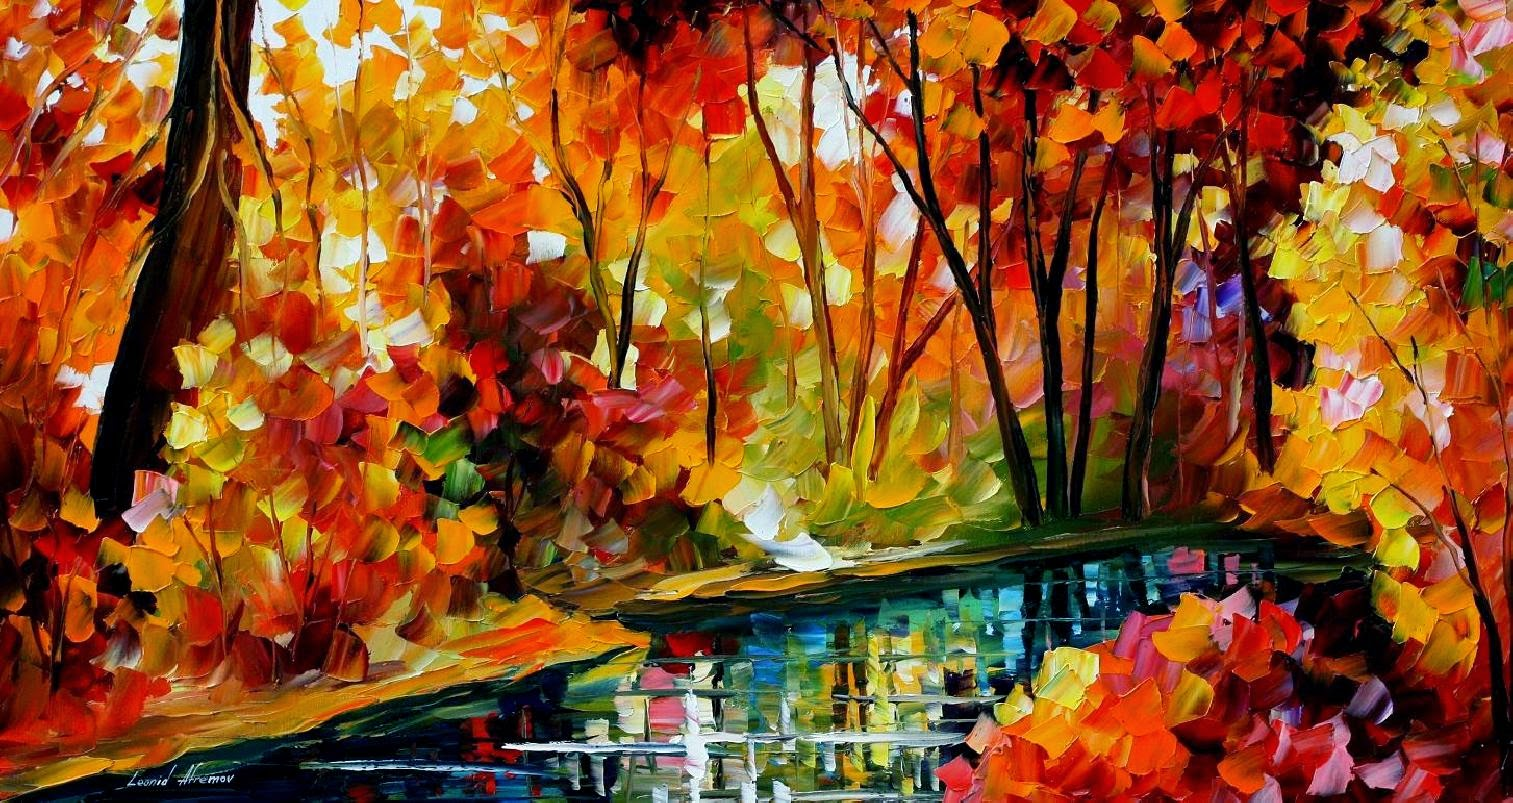 Falling Leaves Wallpaper Screensavers Painting Autumn Paintings By Leonid Afremov Art For